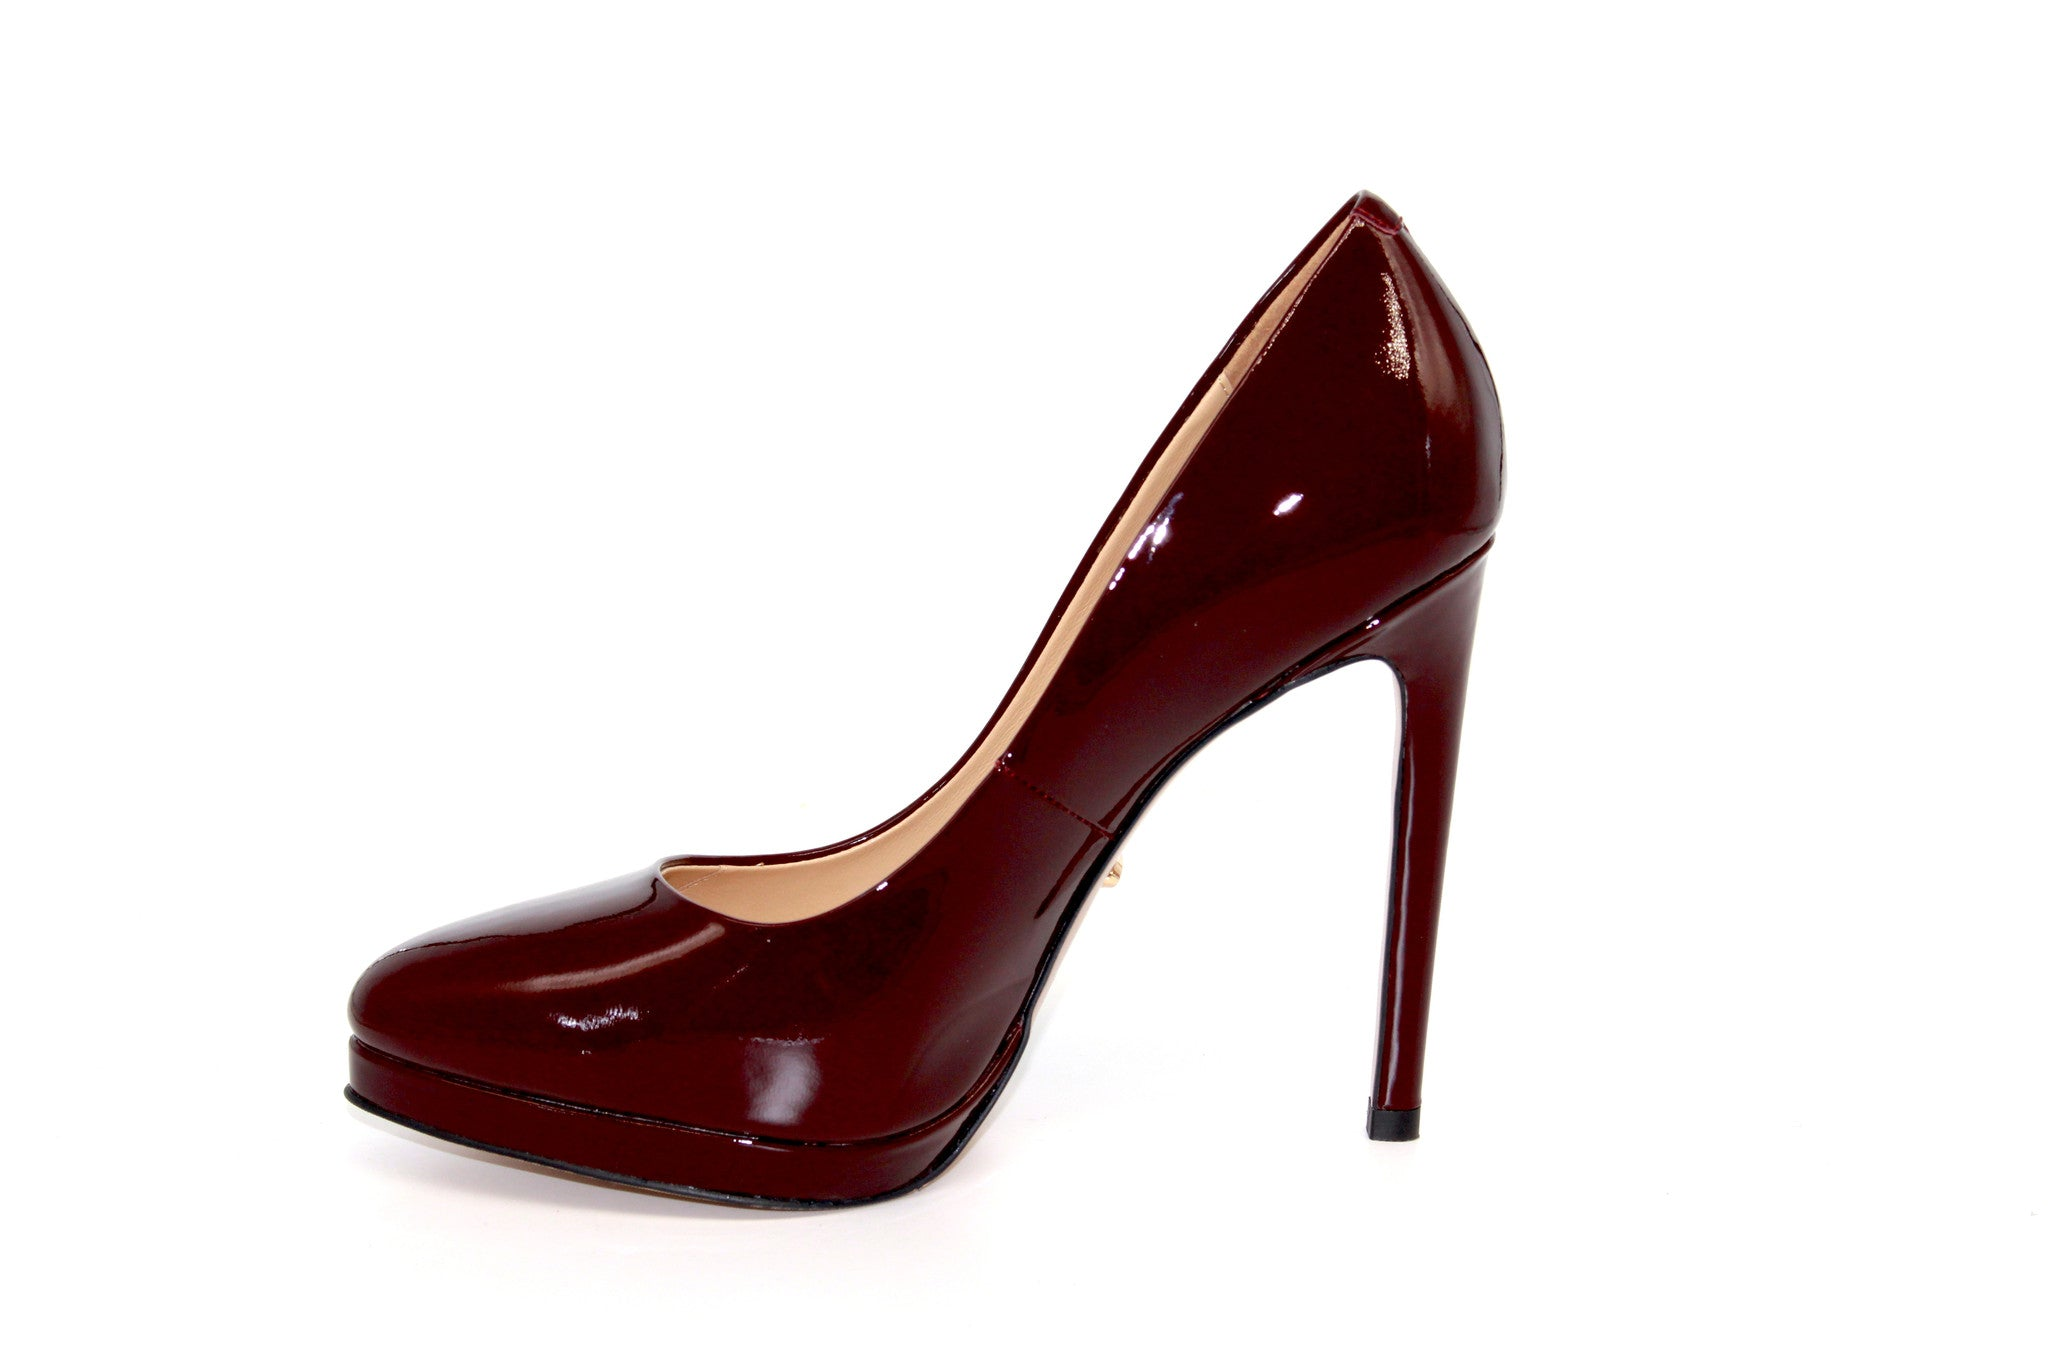 889057922f ... 4.5 Inch Heels - Burgundy Patent Leather Pumps - Angelina Voloshina - AV  Heels - 3